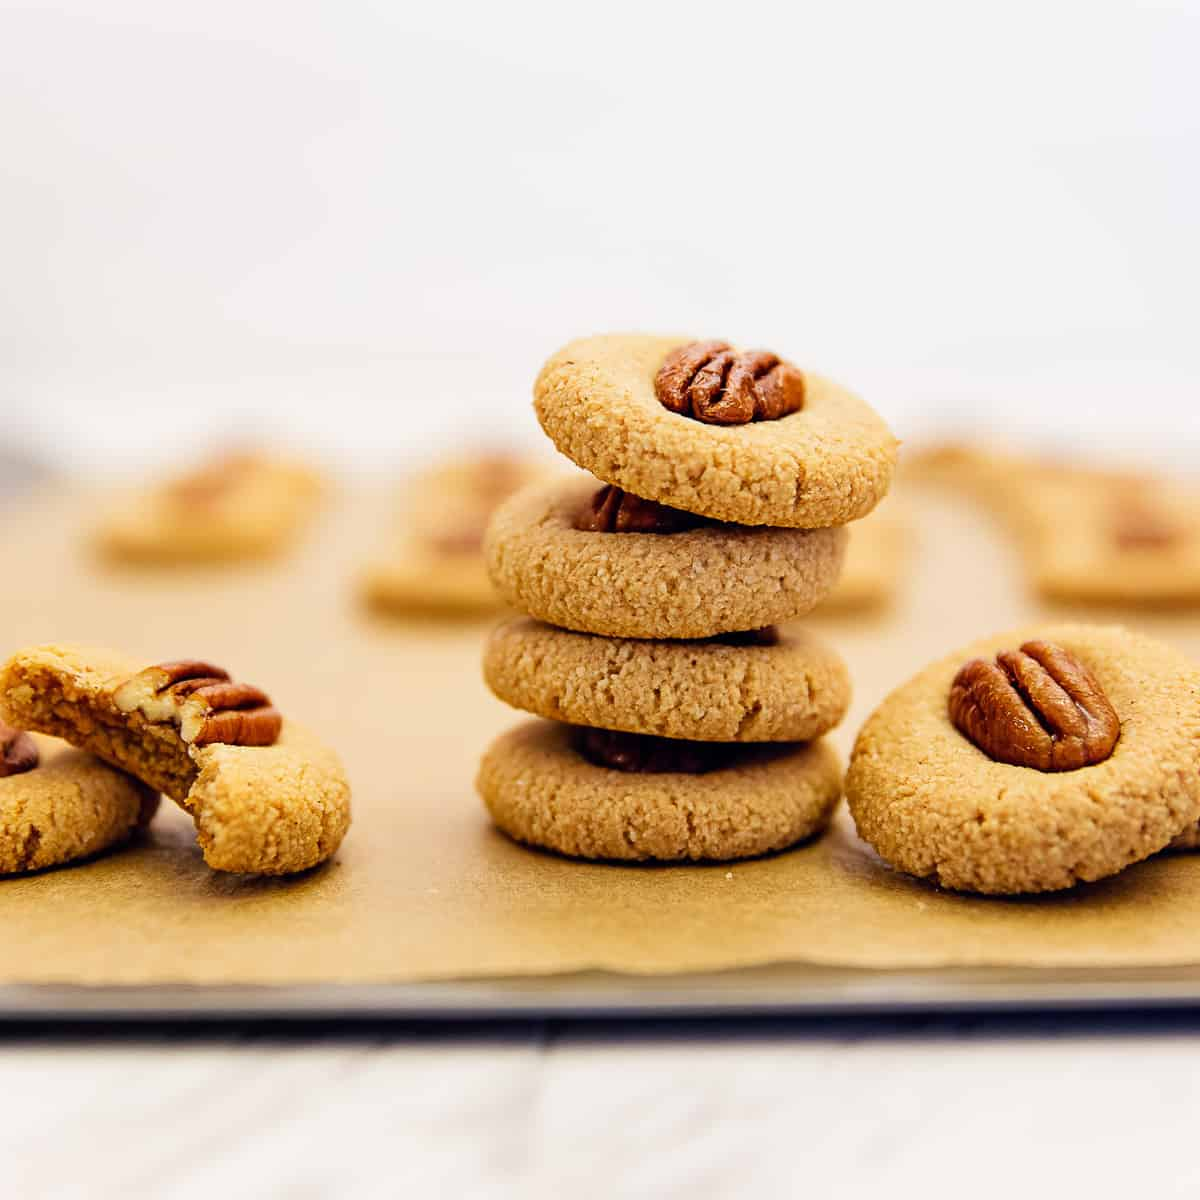 old fashioned maple pecan cookies, cookies, recipe, vegan, vegetarian, whole food plant based, wfpb, gluten free, oil free, refined sugar free, no oil, no refined sugar, no dairy, dessert, sweets, dinner party, entertaining, simple, healthy